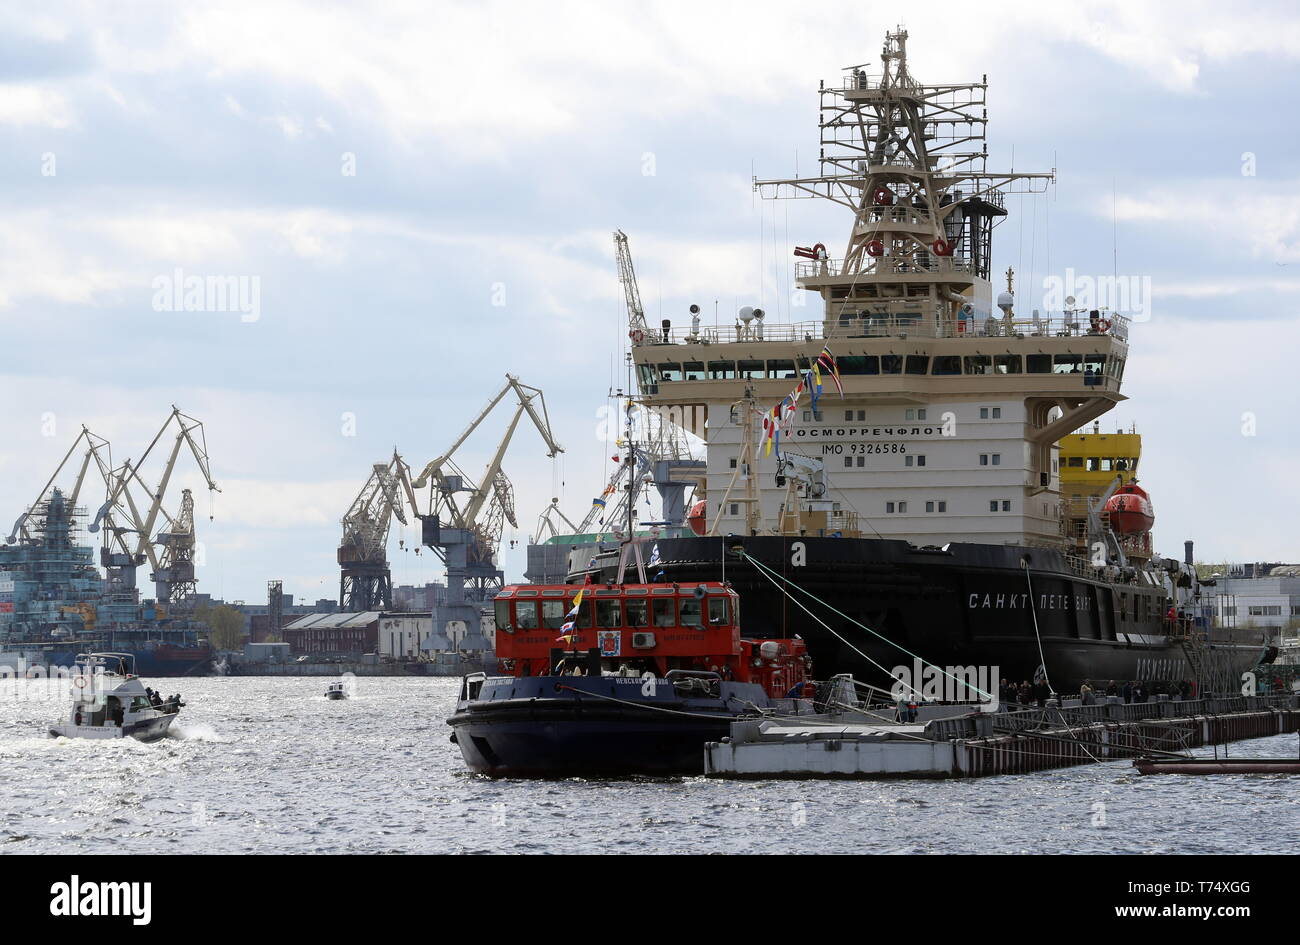 St Petersburg, Russia. 04th May, 2019. ST PETERSBURG, RUSSIA - MAY 4, 2019: The icebreaker Sankt Peterburg involved in a ceremony to open the 2019 Icebreaker Festival. Alexander Demianchuk/TASS Credit: ITAR-TASS News Agency/Alamy Live News - Stock Image